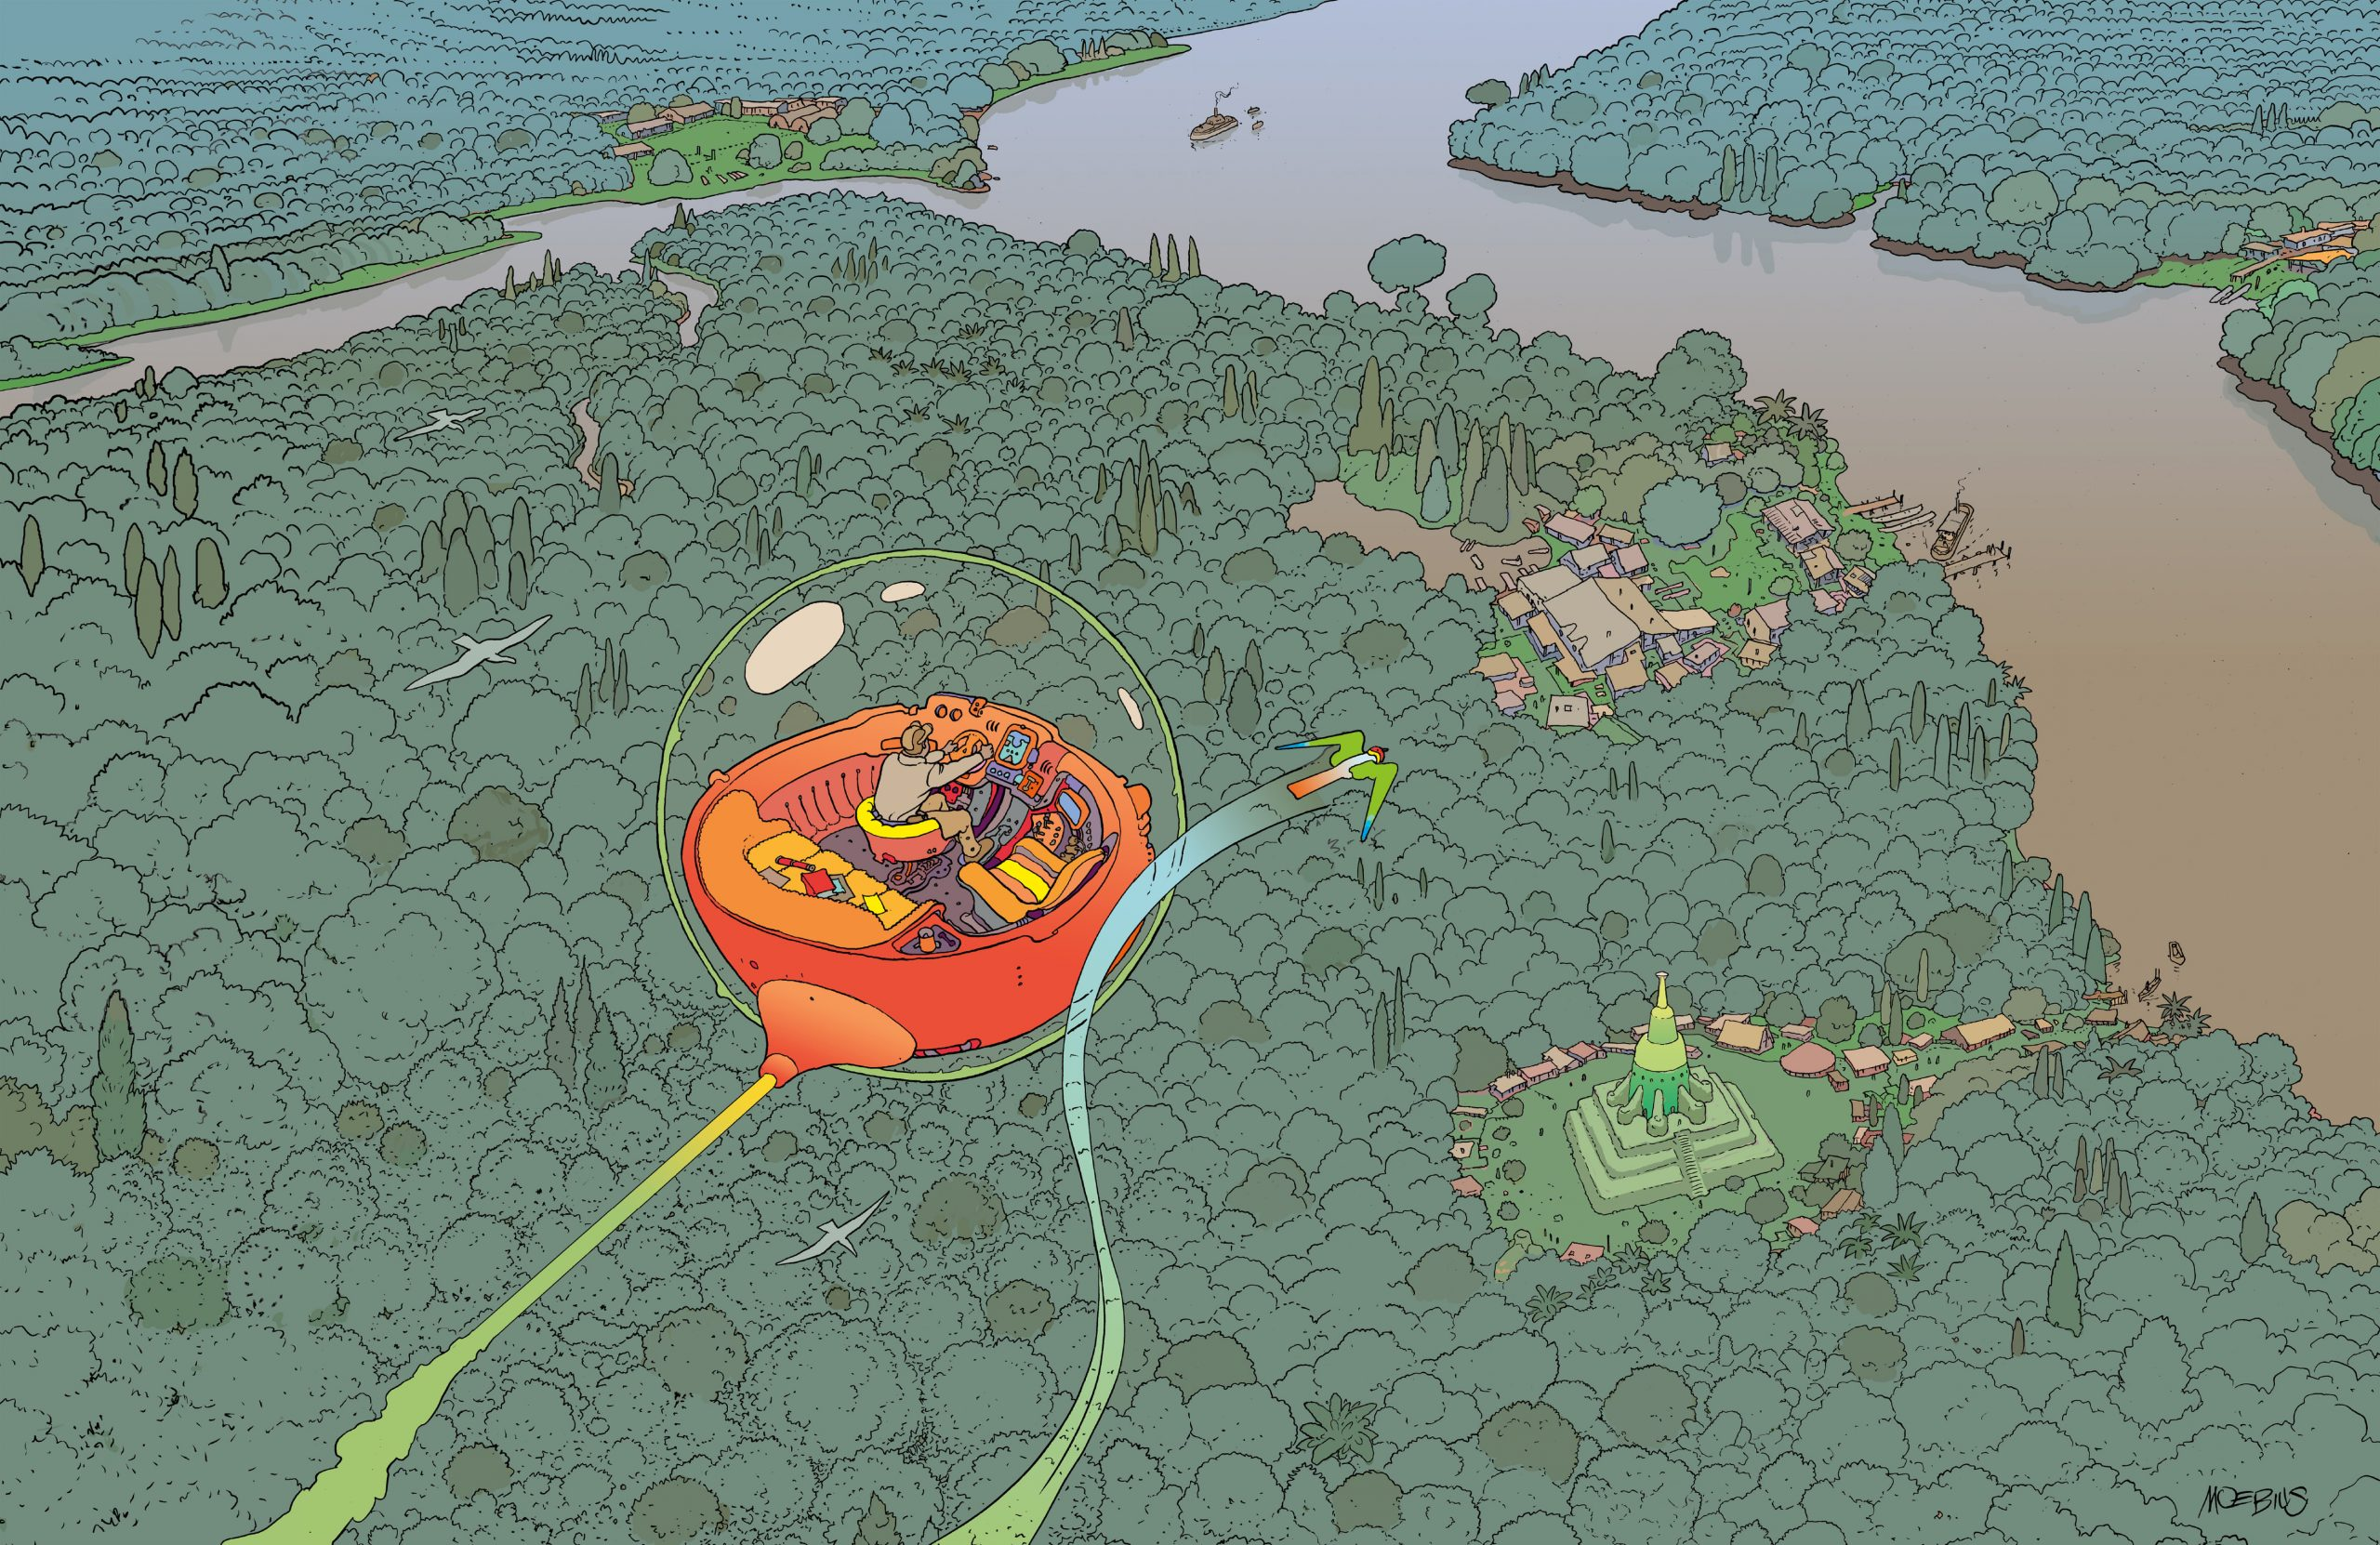 Edena From Above by Moebius